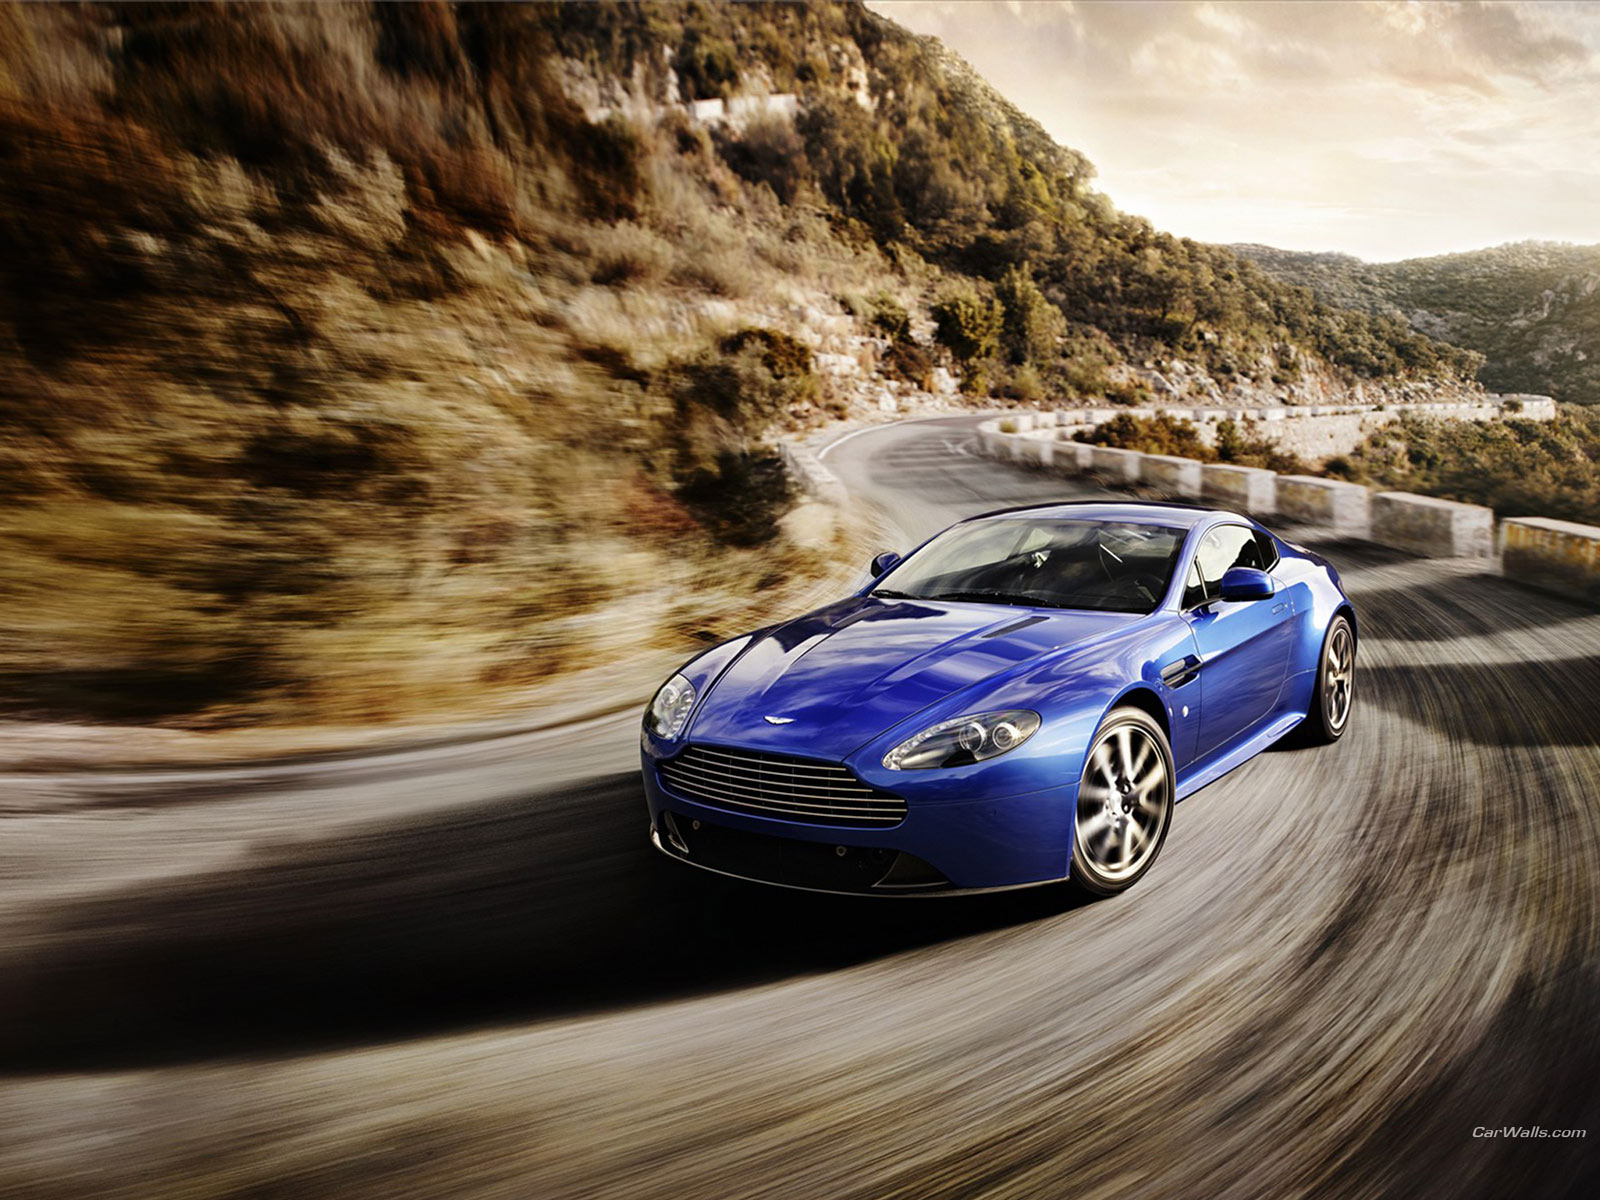 Aston martin V8 vantage S 350 1600x1200 Cool Car Wallpapers Aston Martin